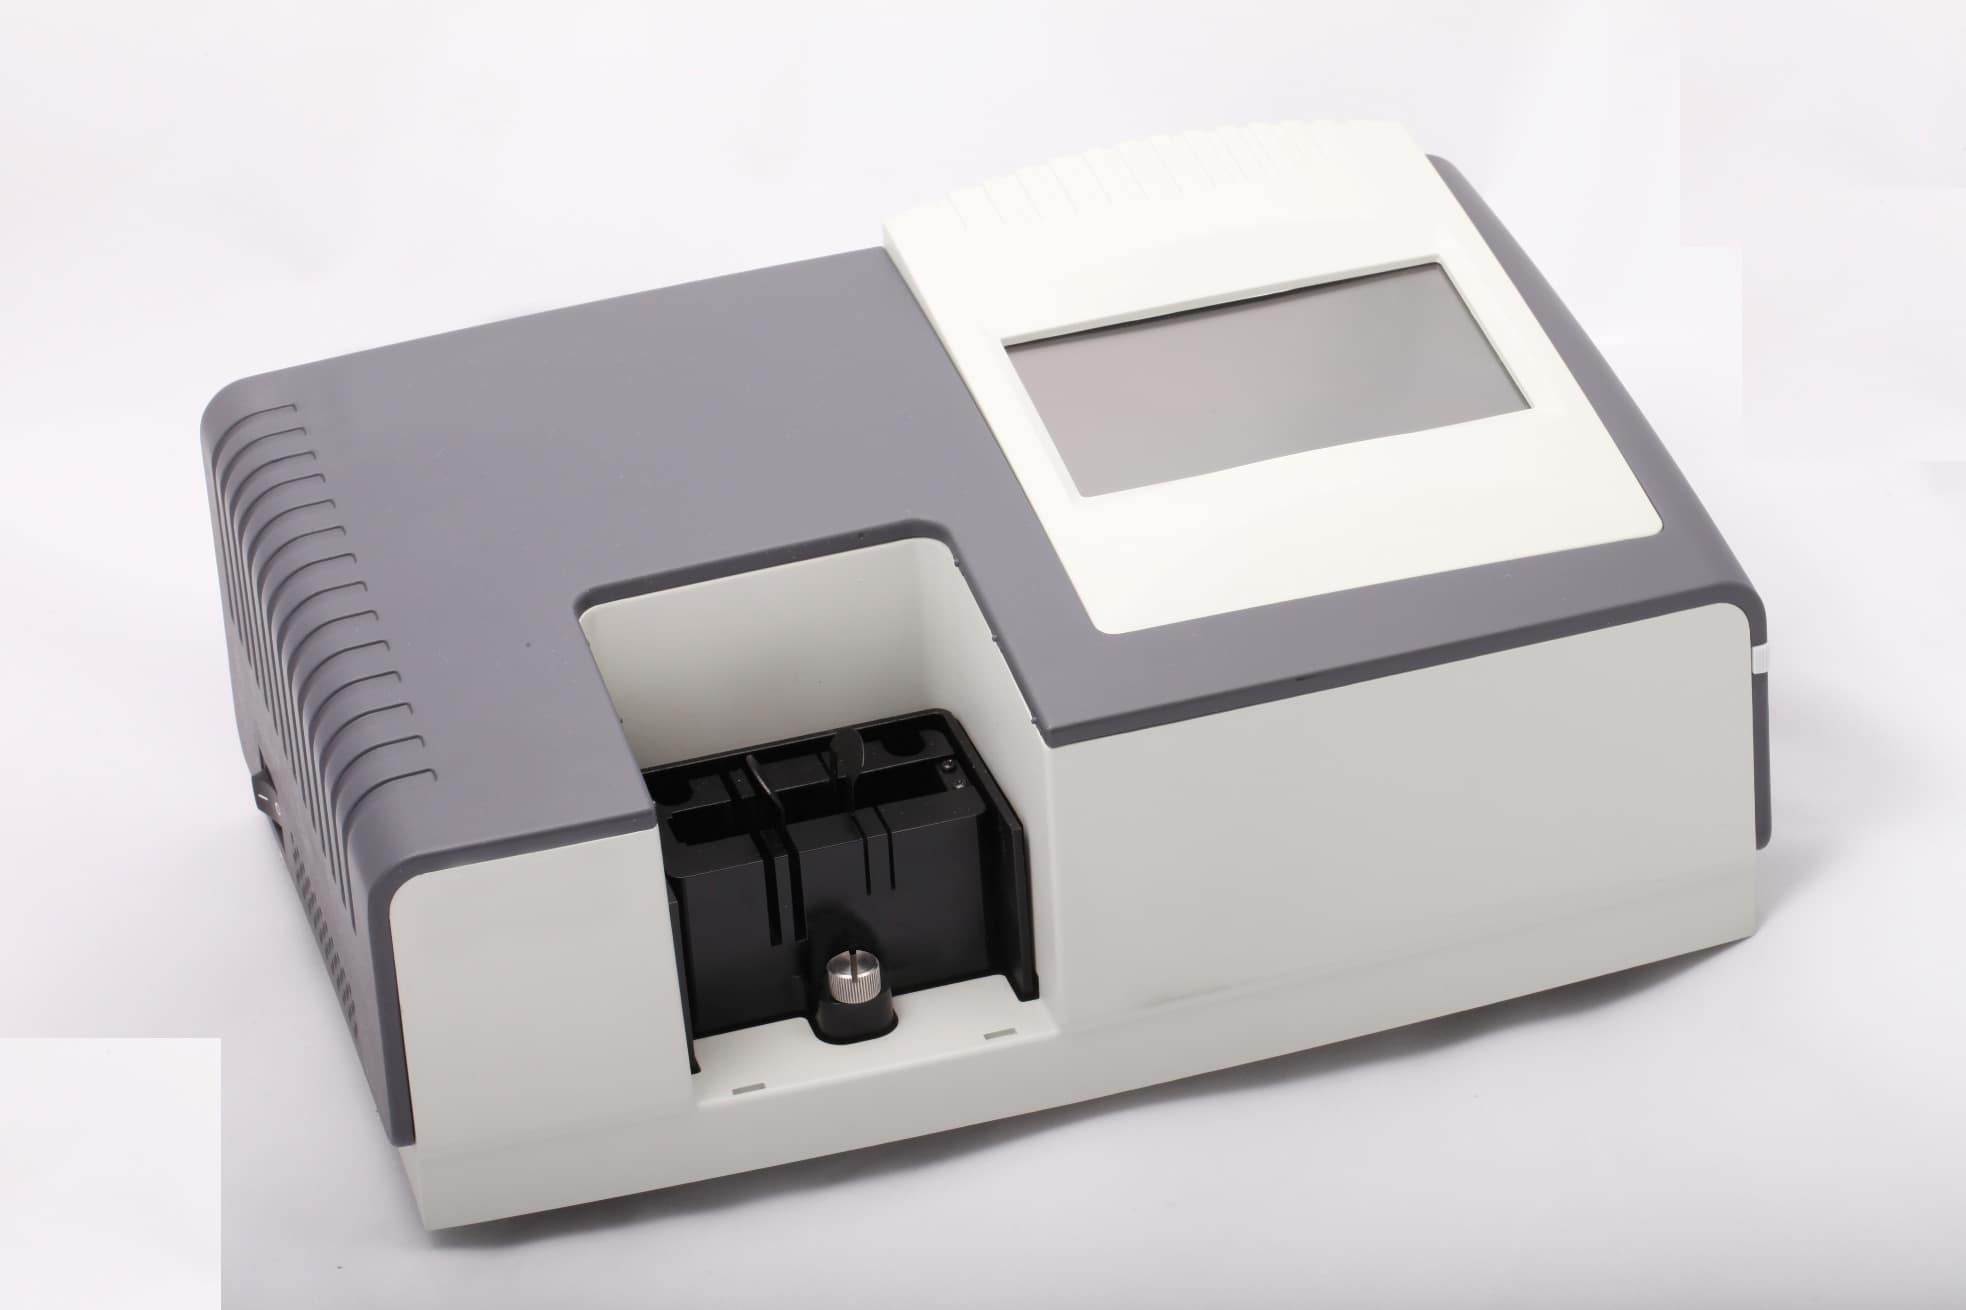 Persee T3 small size Vis Spectrometer